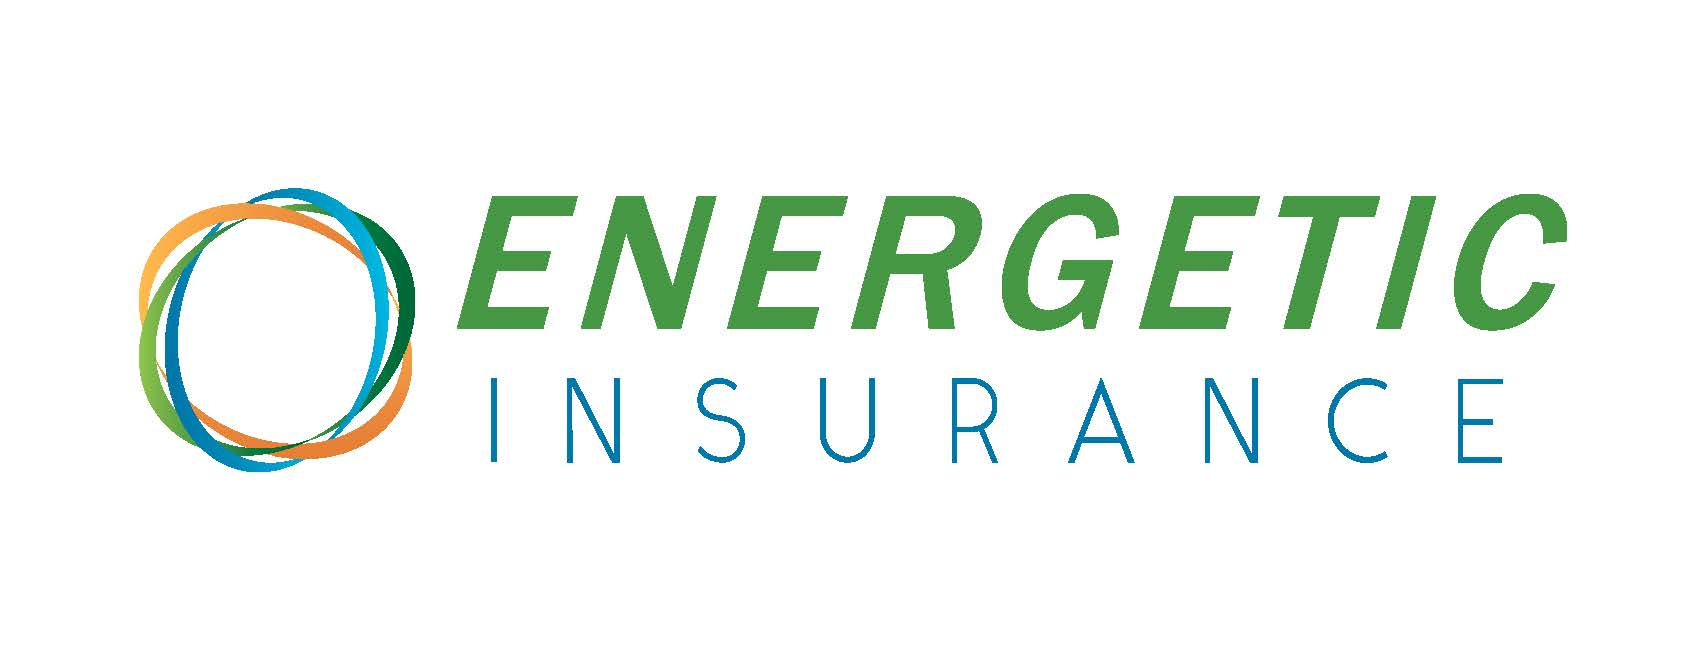 energetic insurance financial technology credit union 2.0